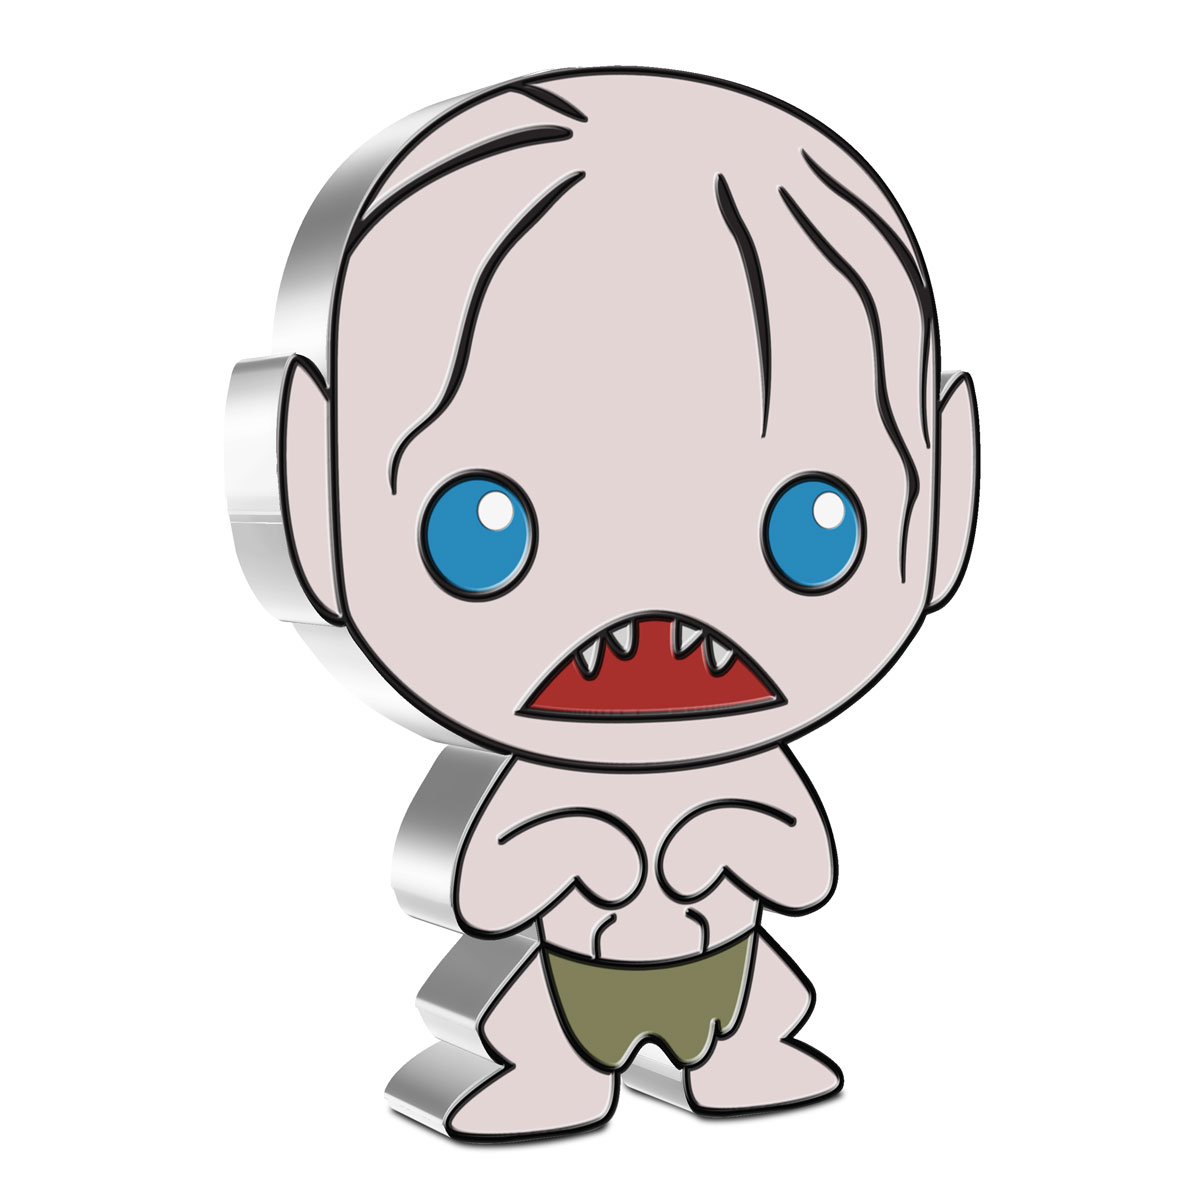 2021 Niue Lord of the Rings - Chibi Gollum 1 oz Silver Colorized Proof $2 Coin GEM Proof OGP